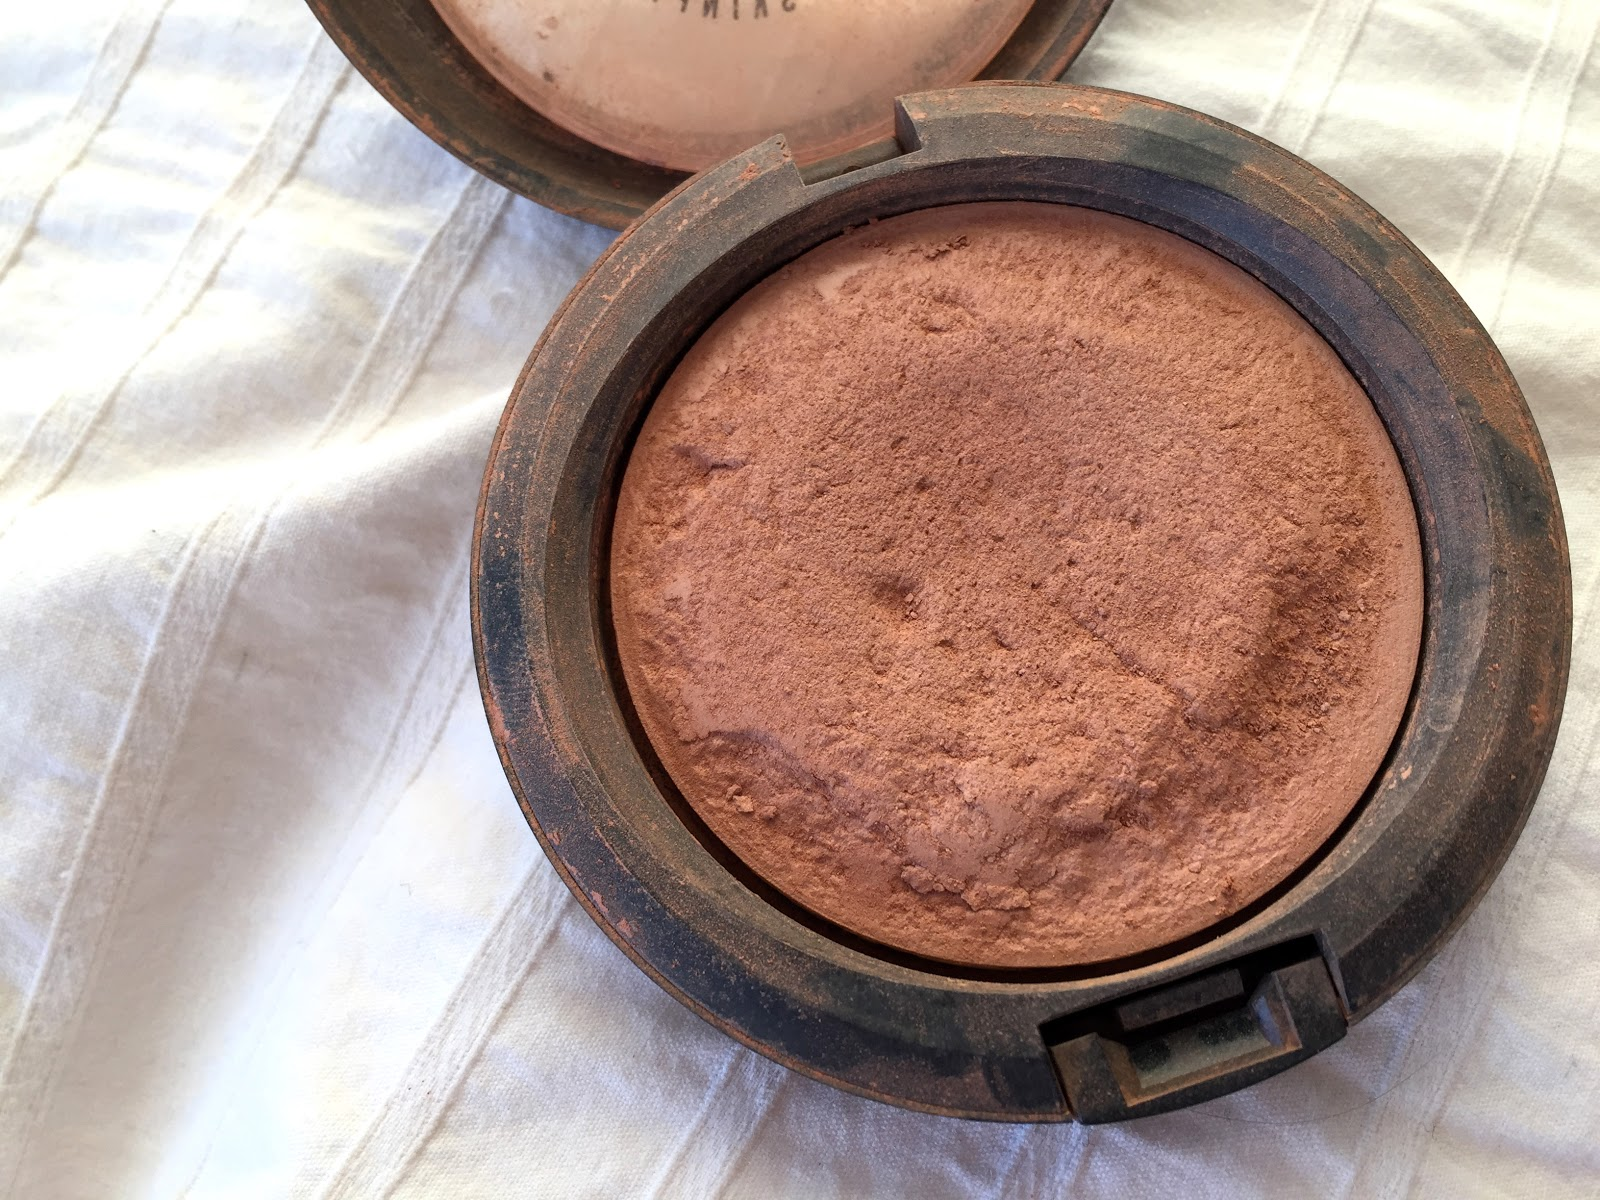 MAC, MAC bronzer review, MAC powder review, bronzing powder MAC,